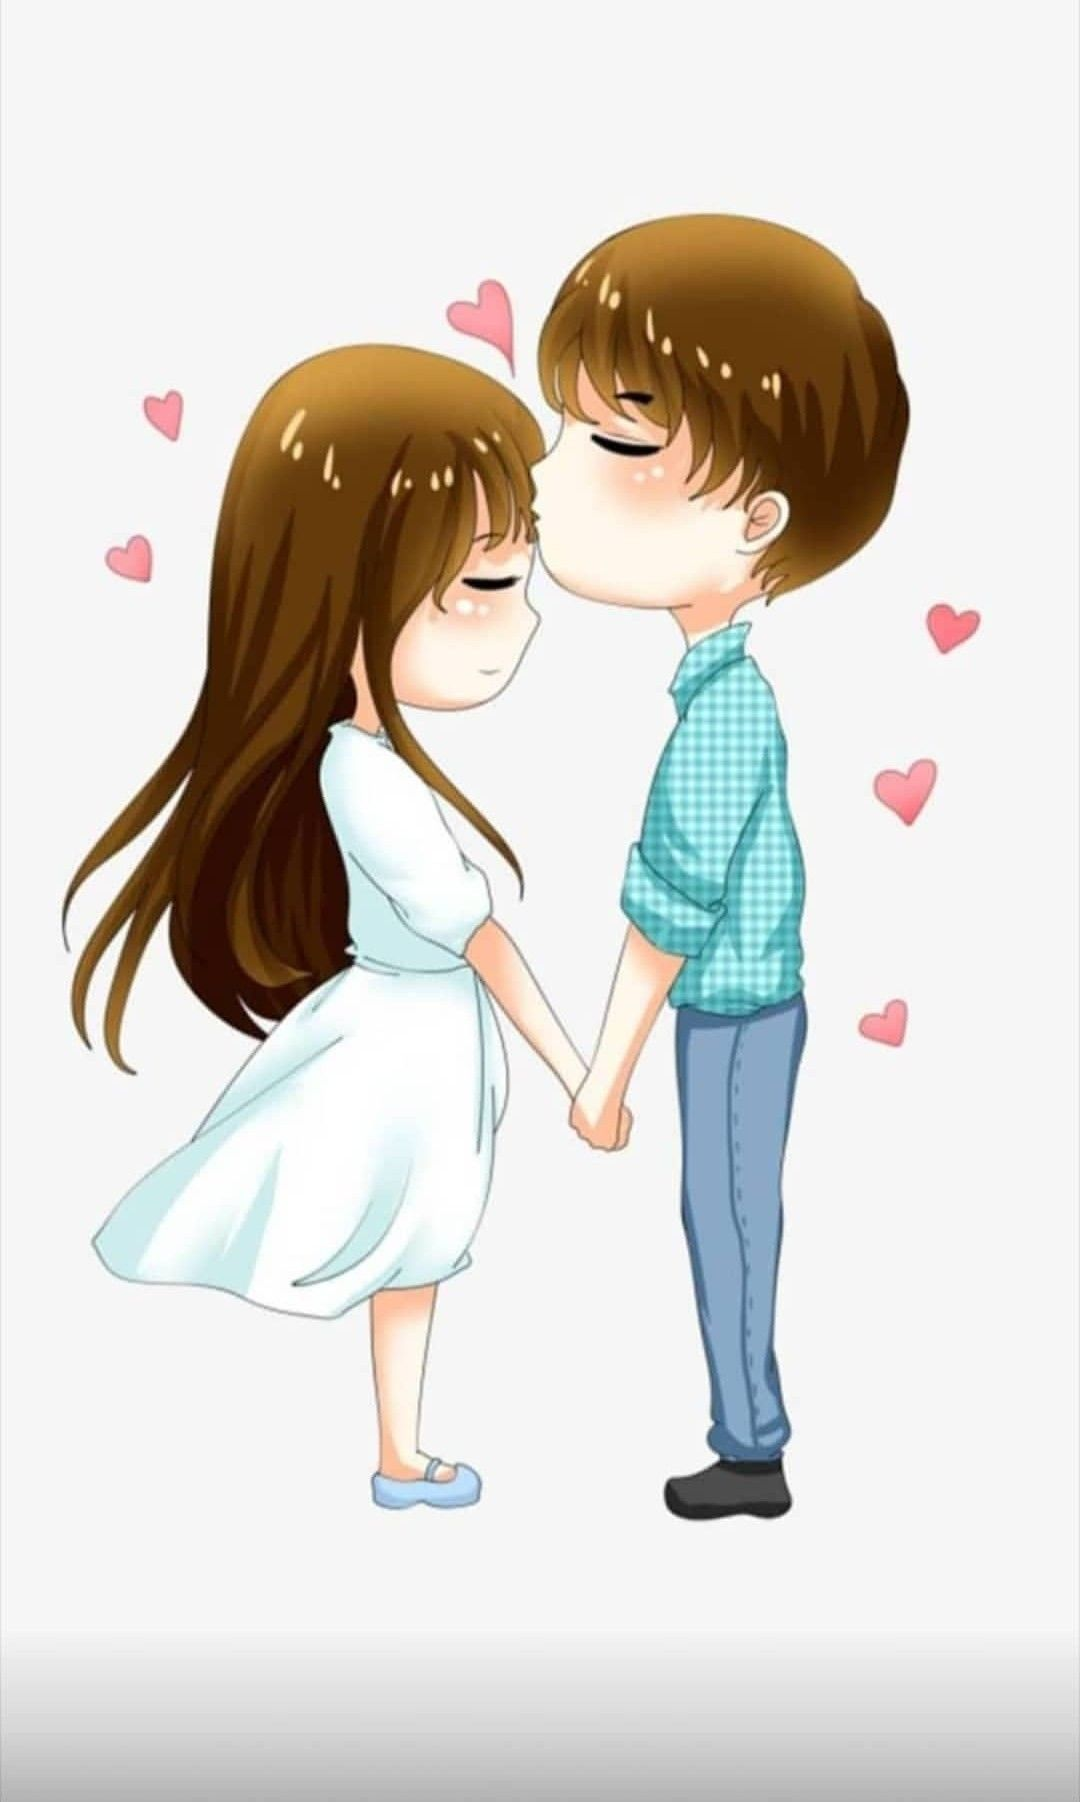 Pin By Deepak On Love Whatsapp Profile Picture Cute Love Images Cute Profile Pictures